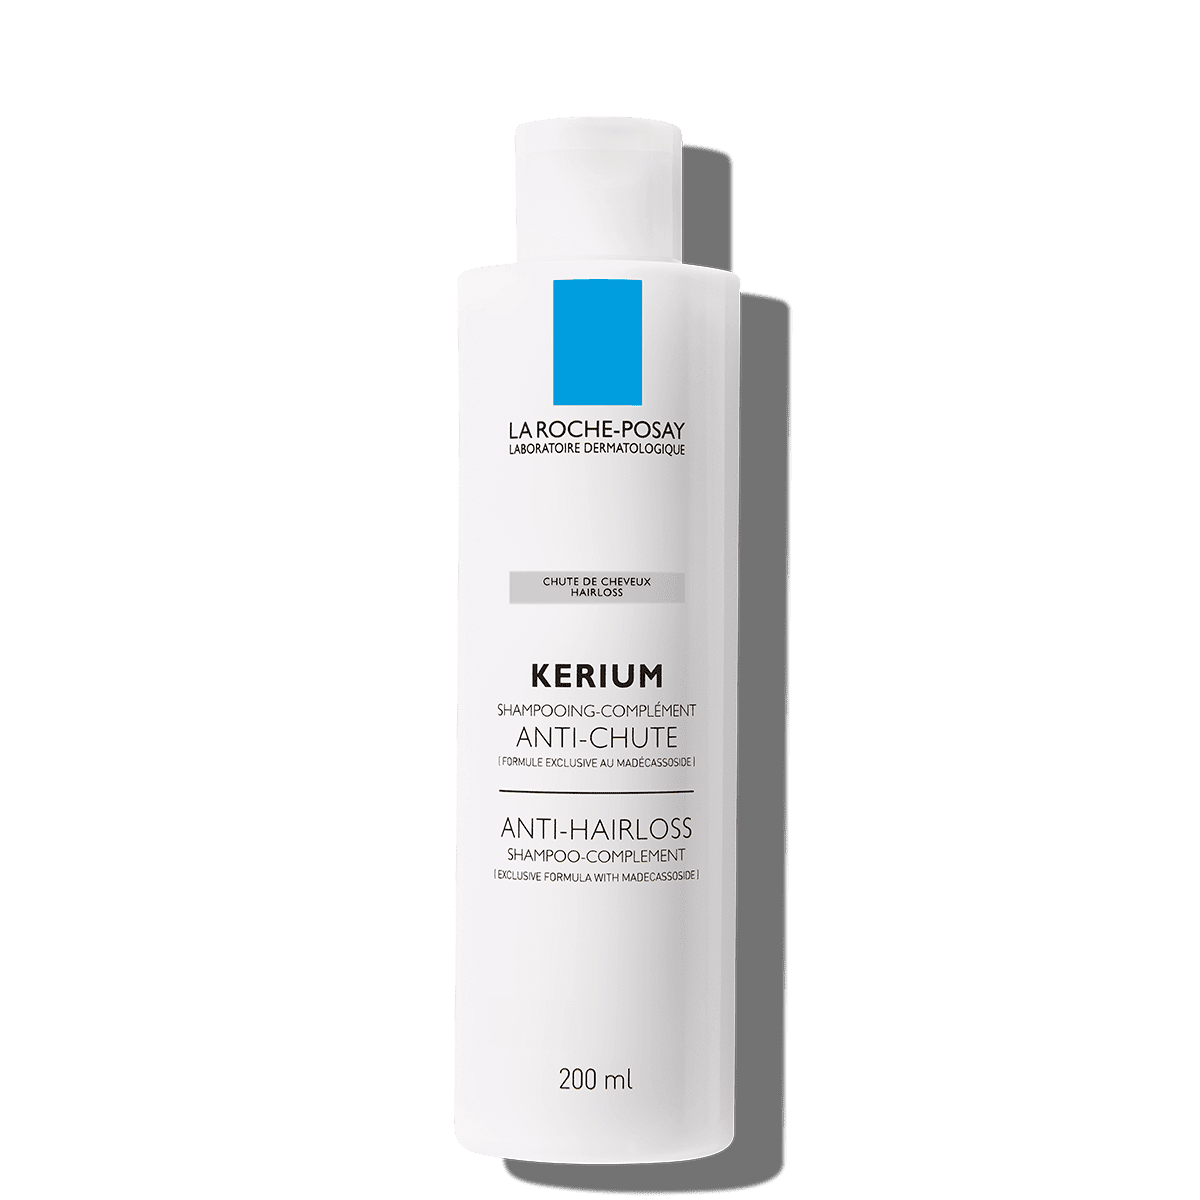 La Roche Posay ProductPage Kerium Anti Hairloss Shampoo 200ml 33378724